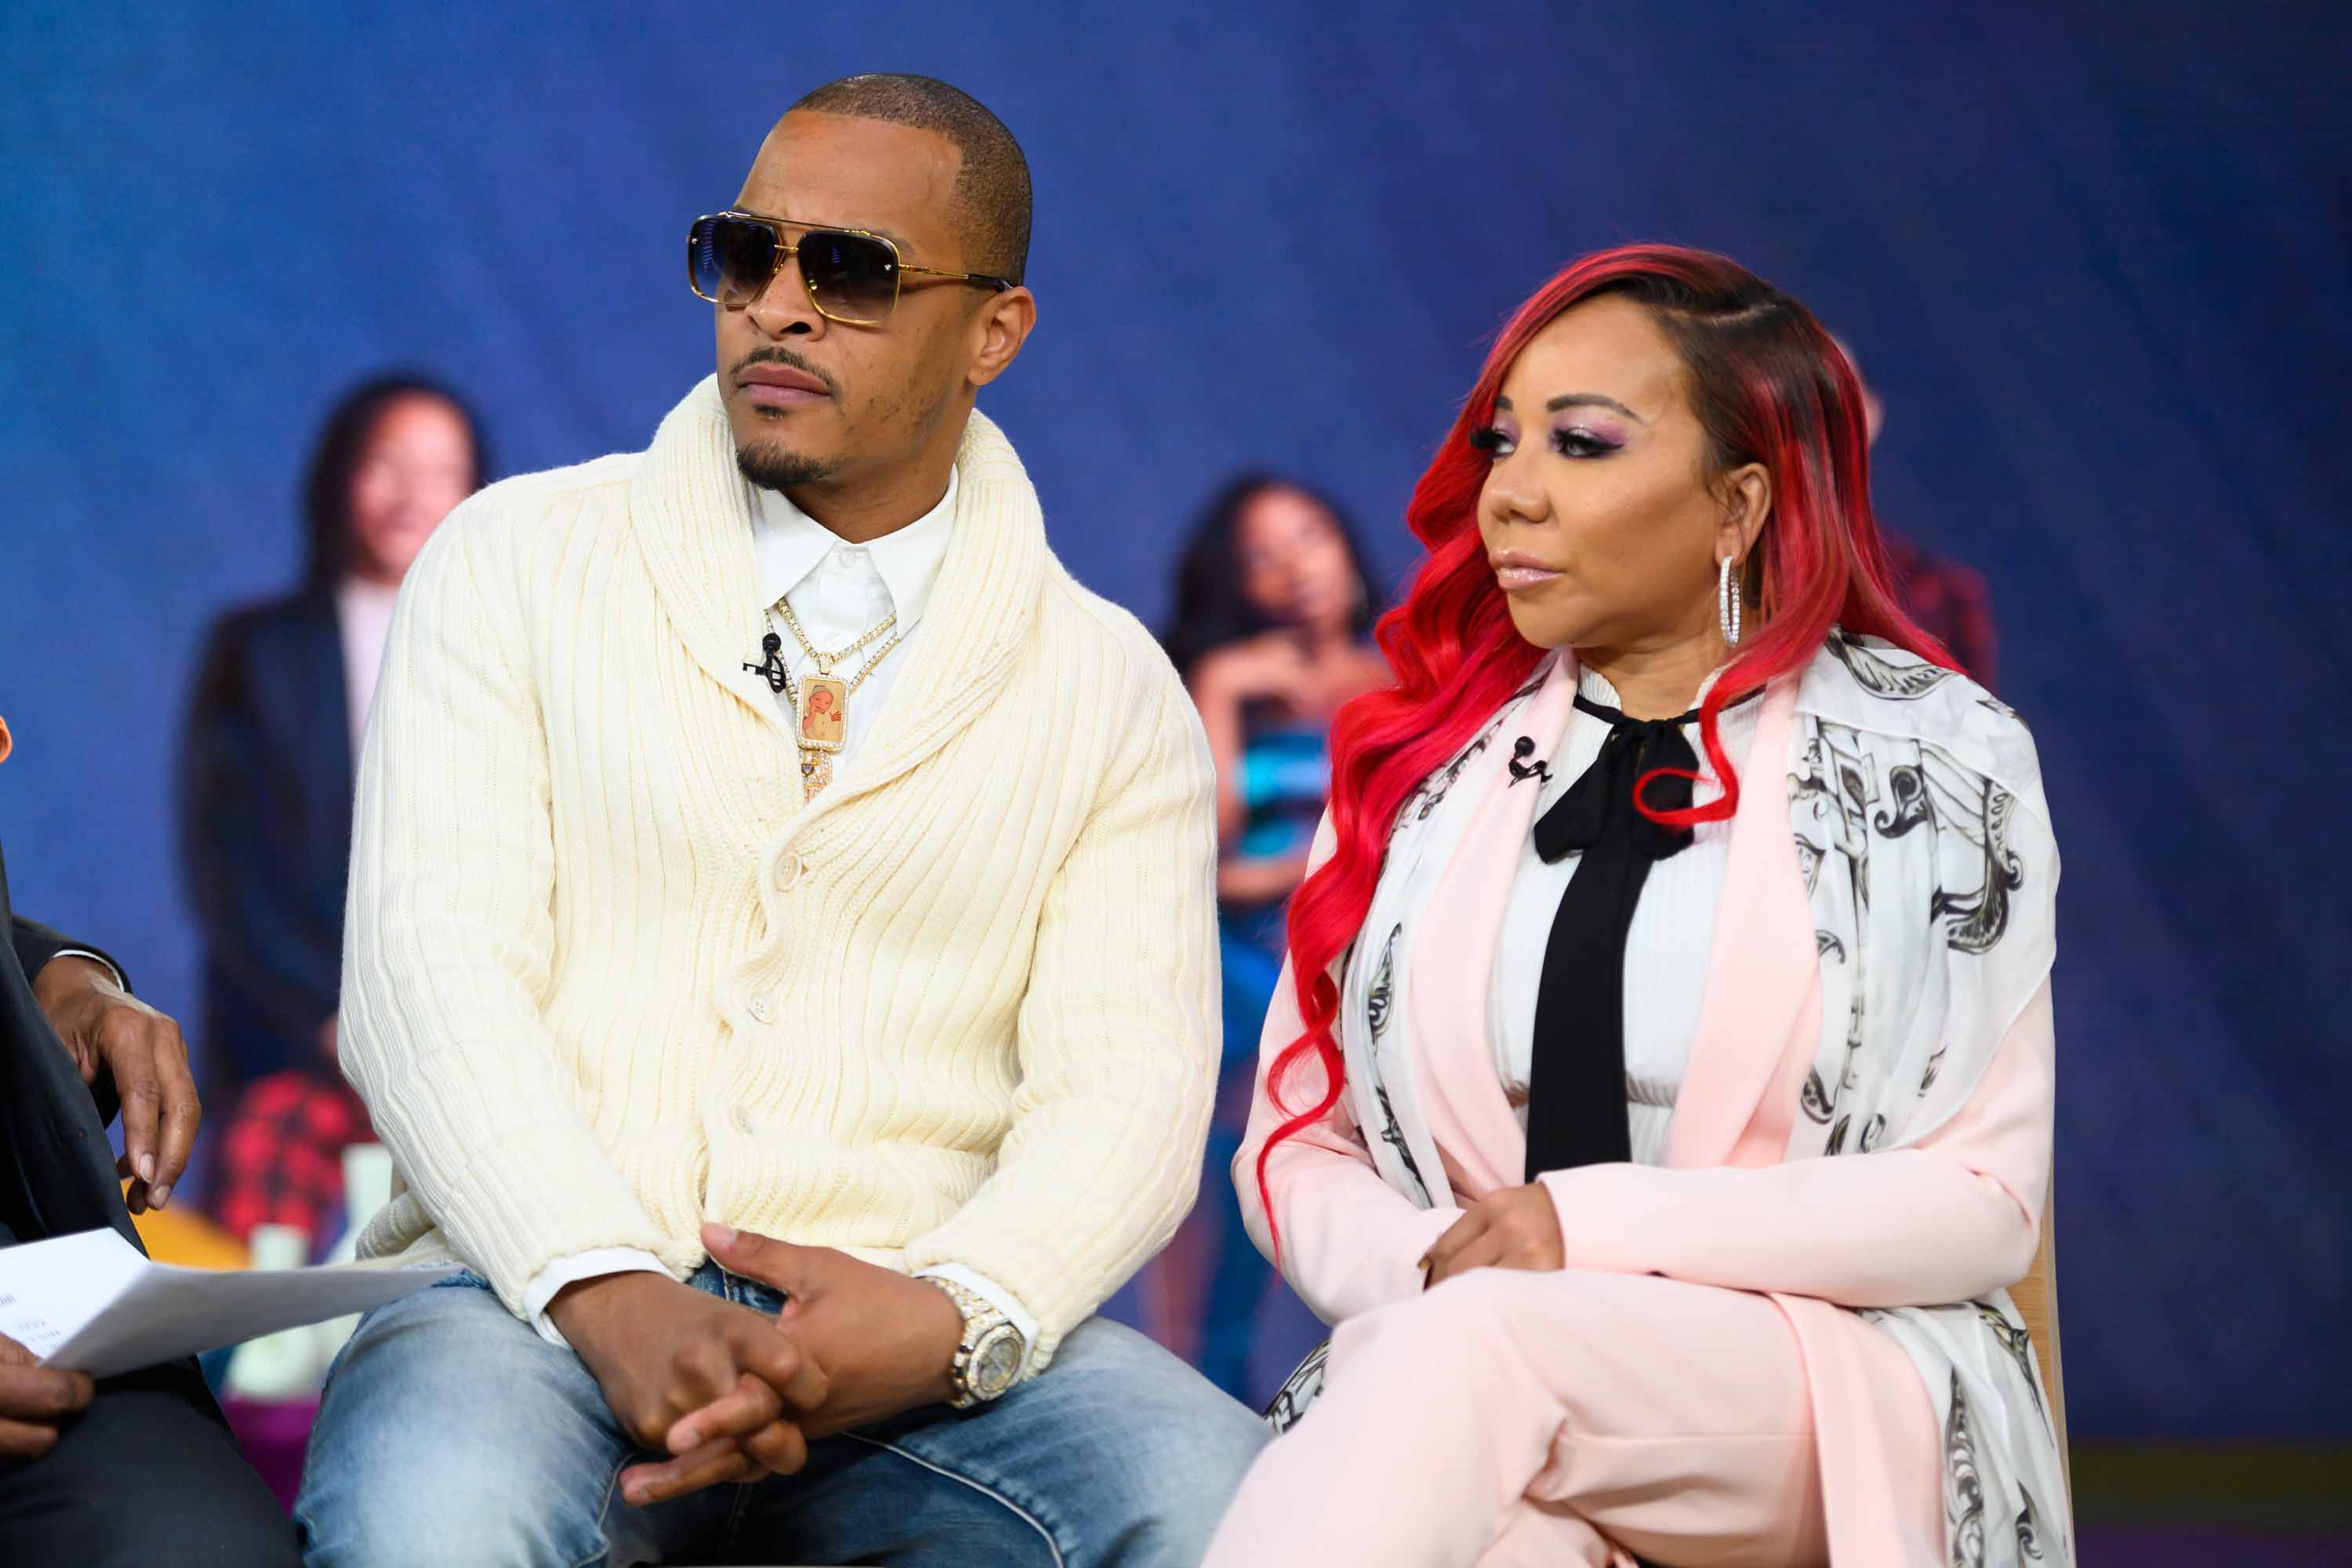 T.I. and Tiny's lawyer says they have not been contacted by police